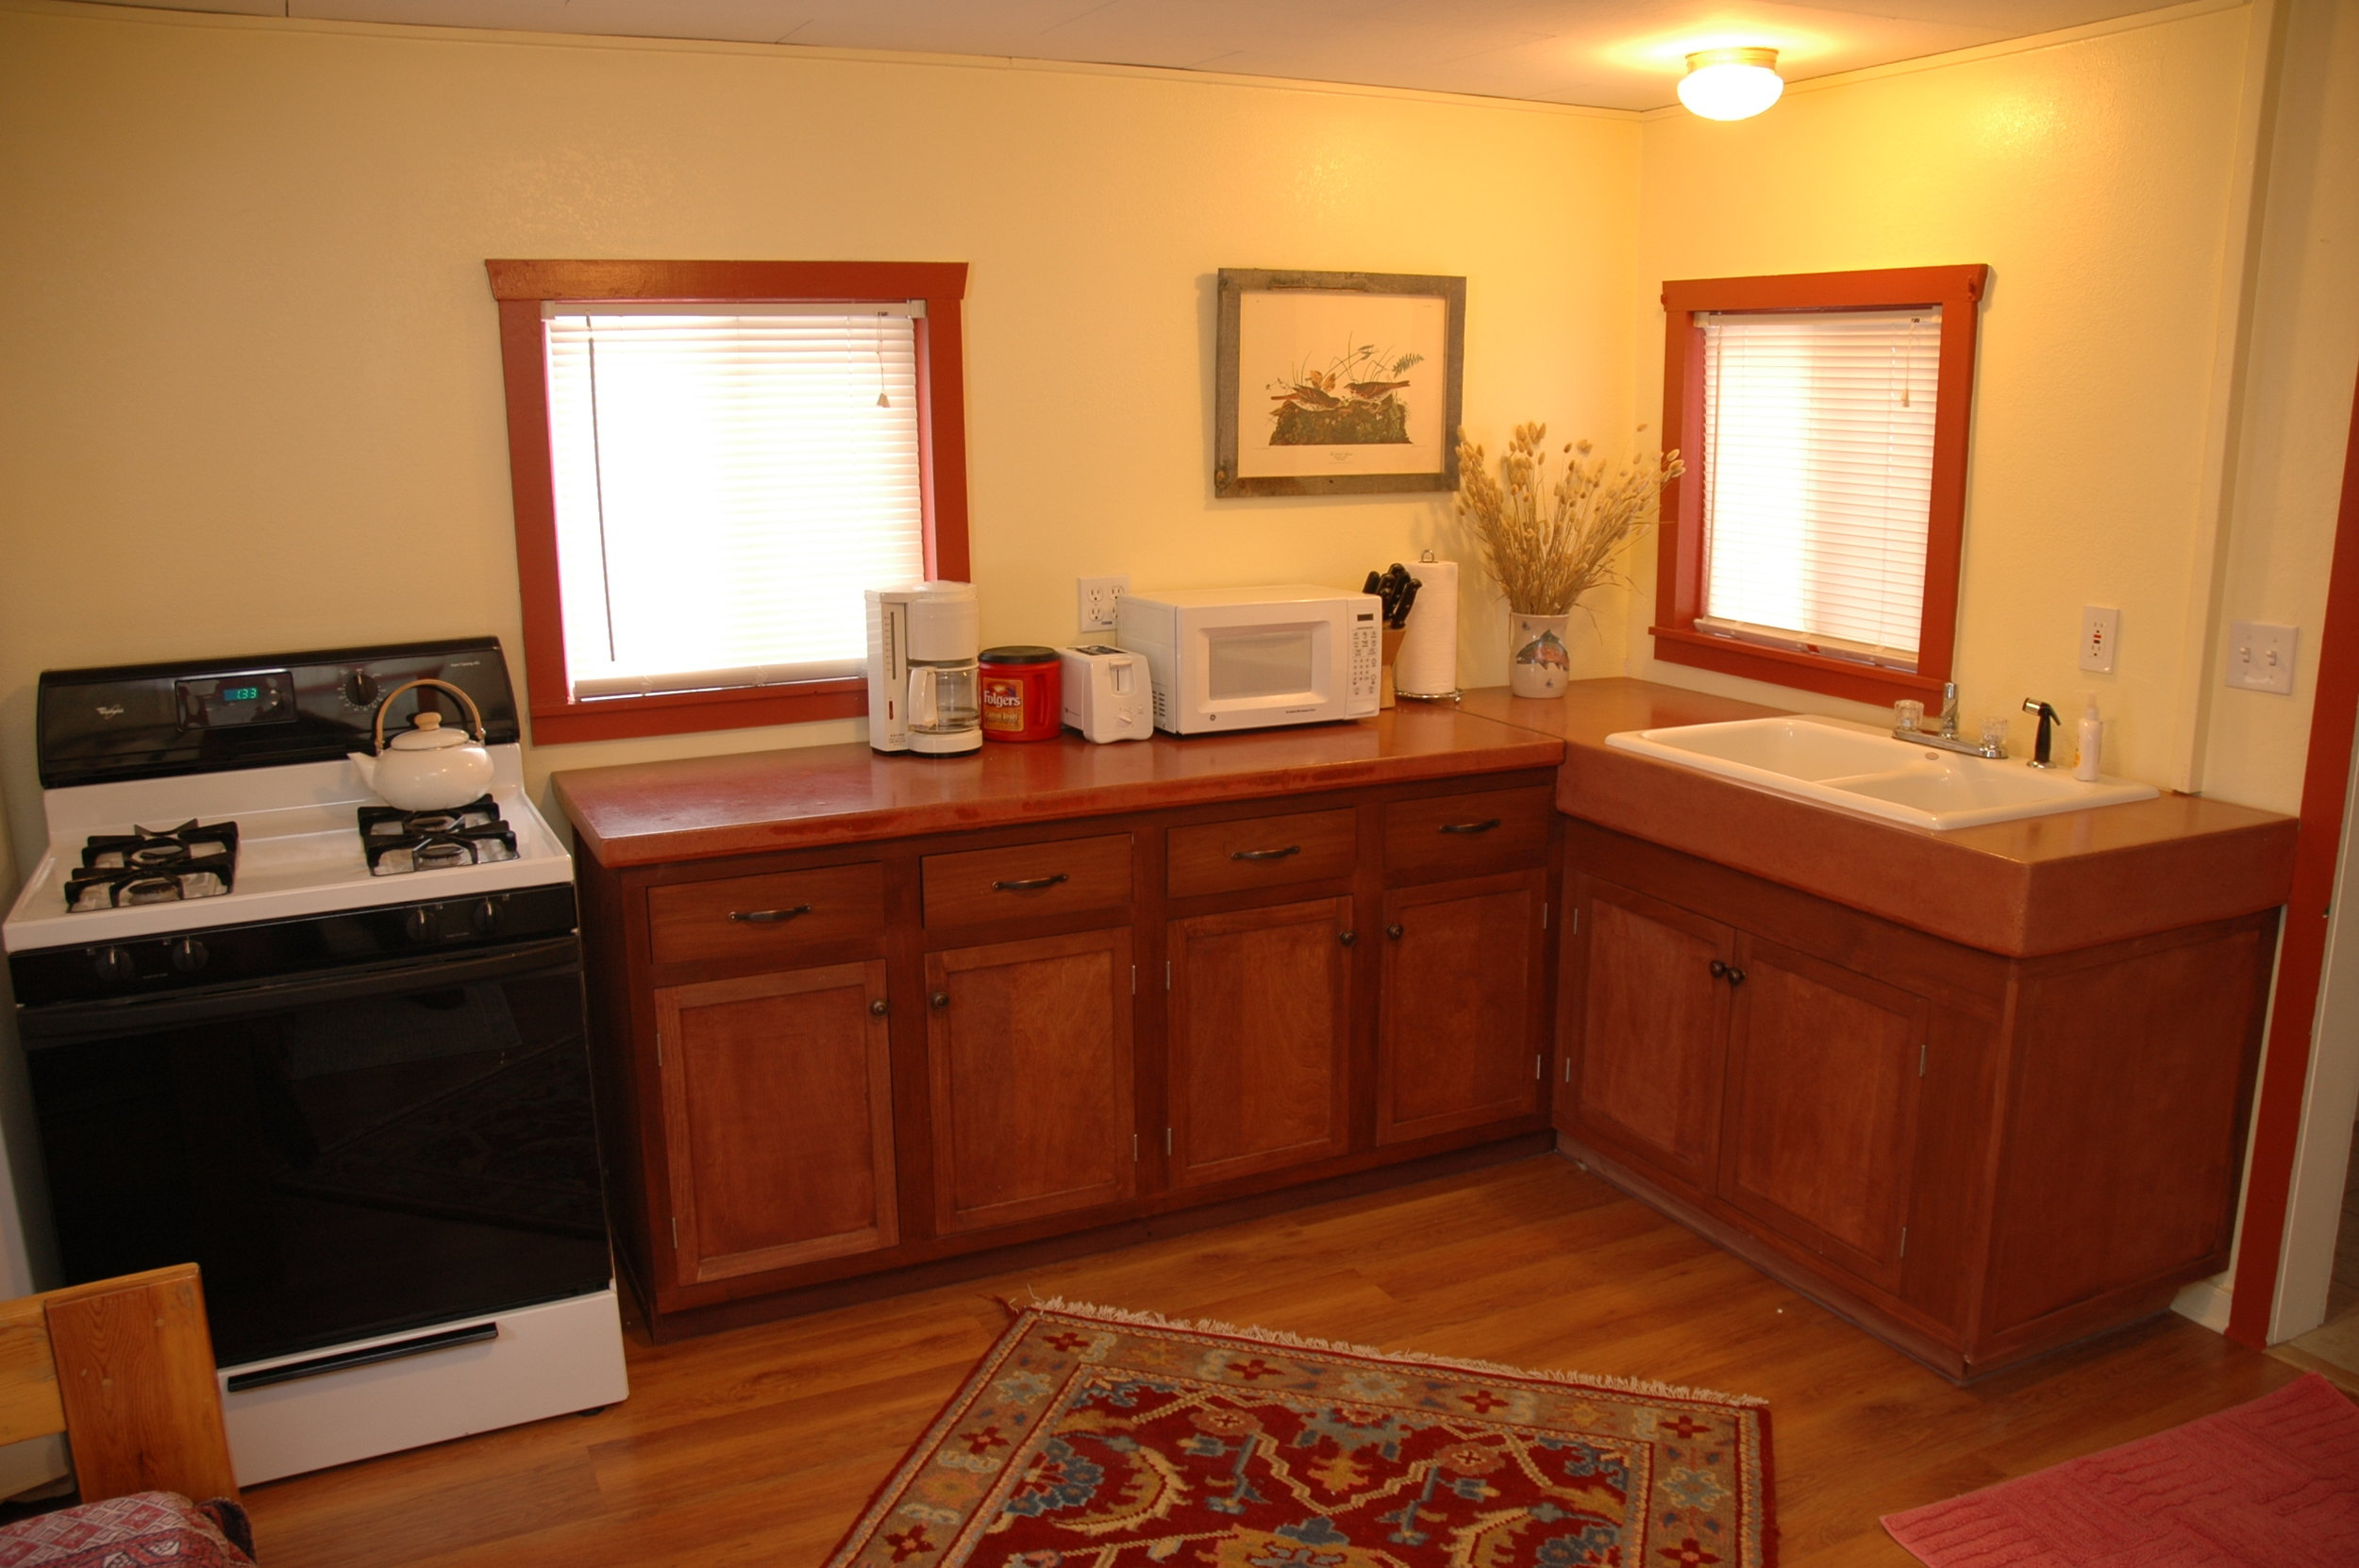 DSC_0762 nighthawk kitchen.JPG